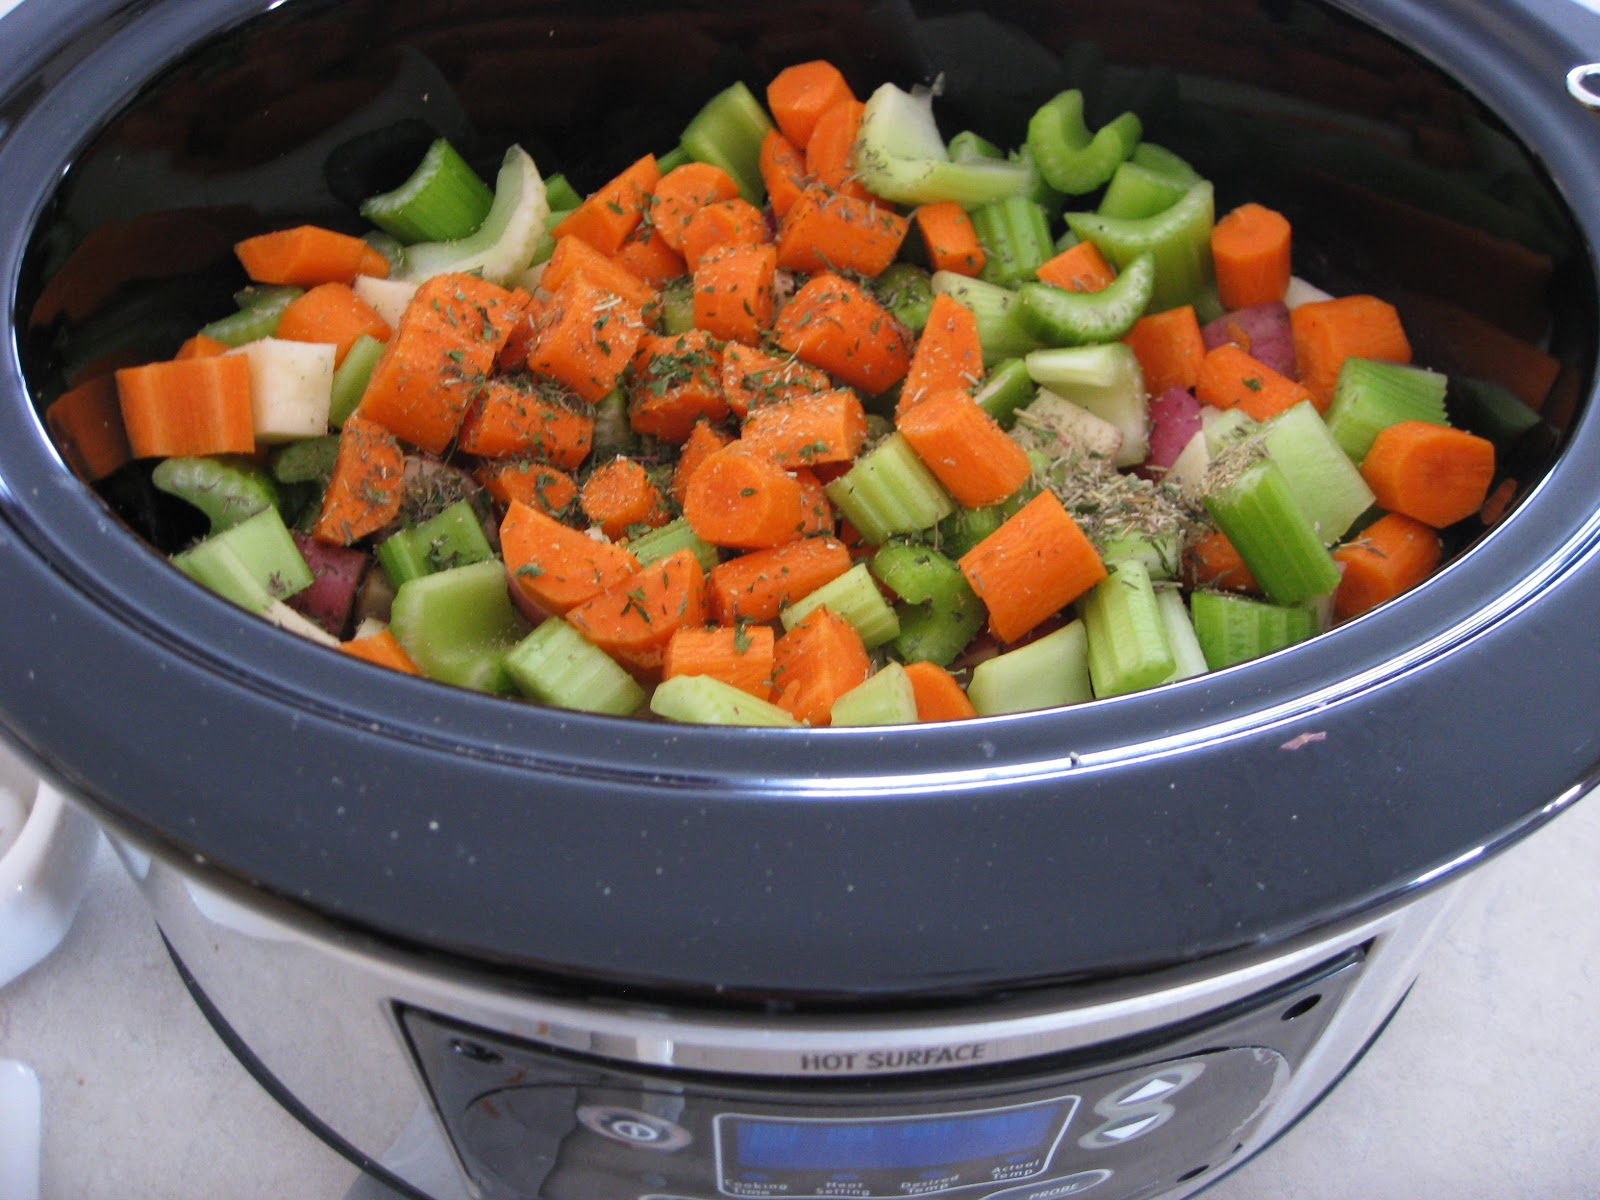 First, chop up all of your veggies and throw them in the slow cooker ...